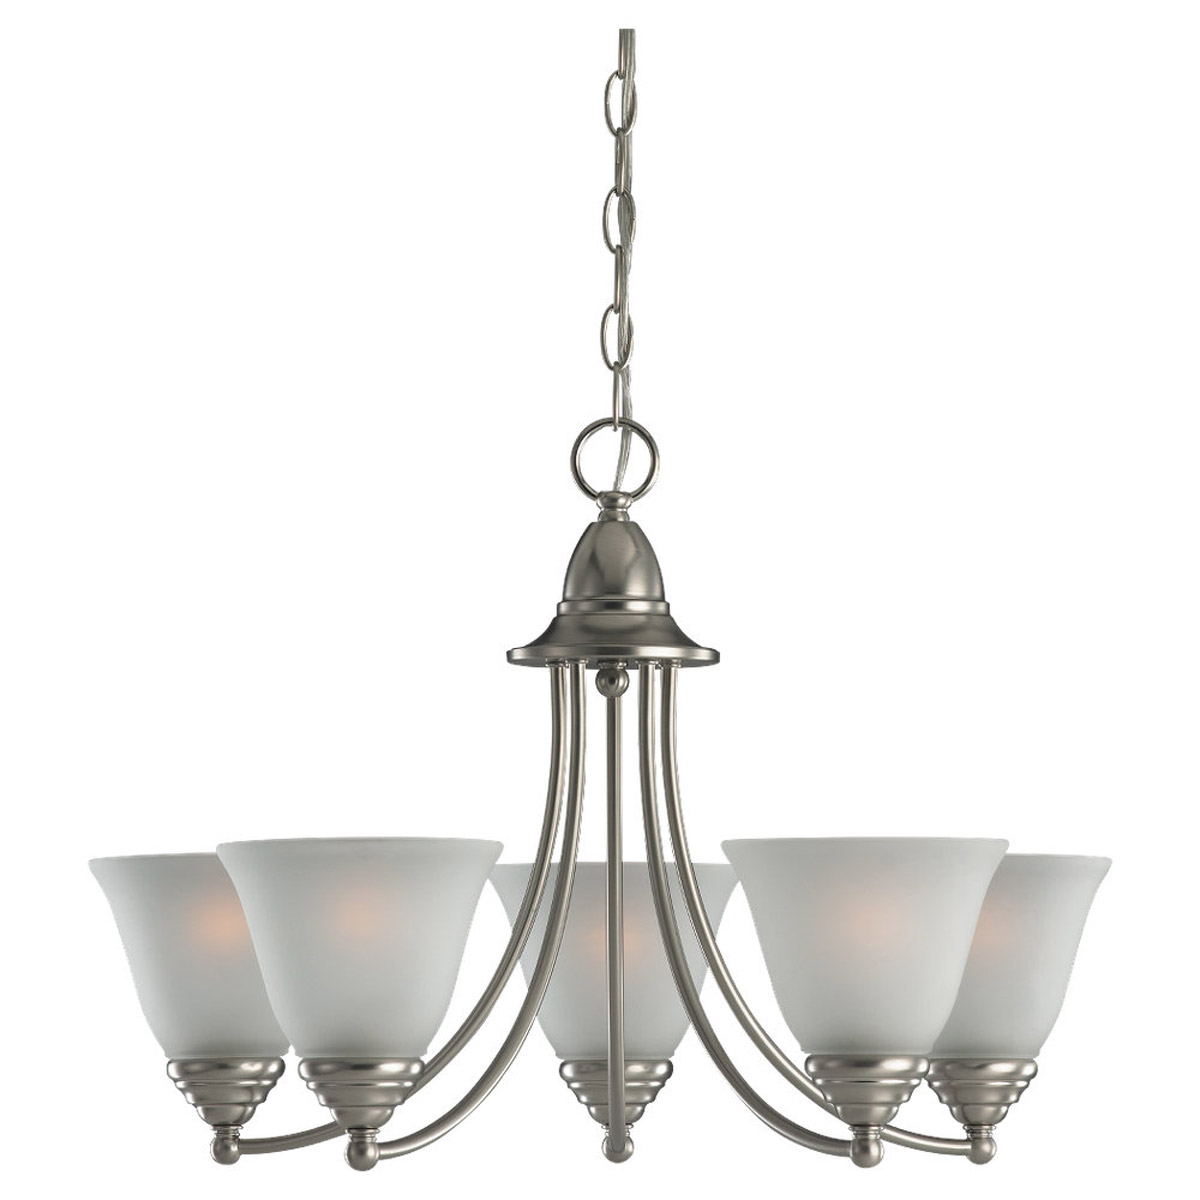 Sea Gull 31576-962 Albany 5 Light 24 inch Brushed Nickel Chandelier Ceiling Light photo